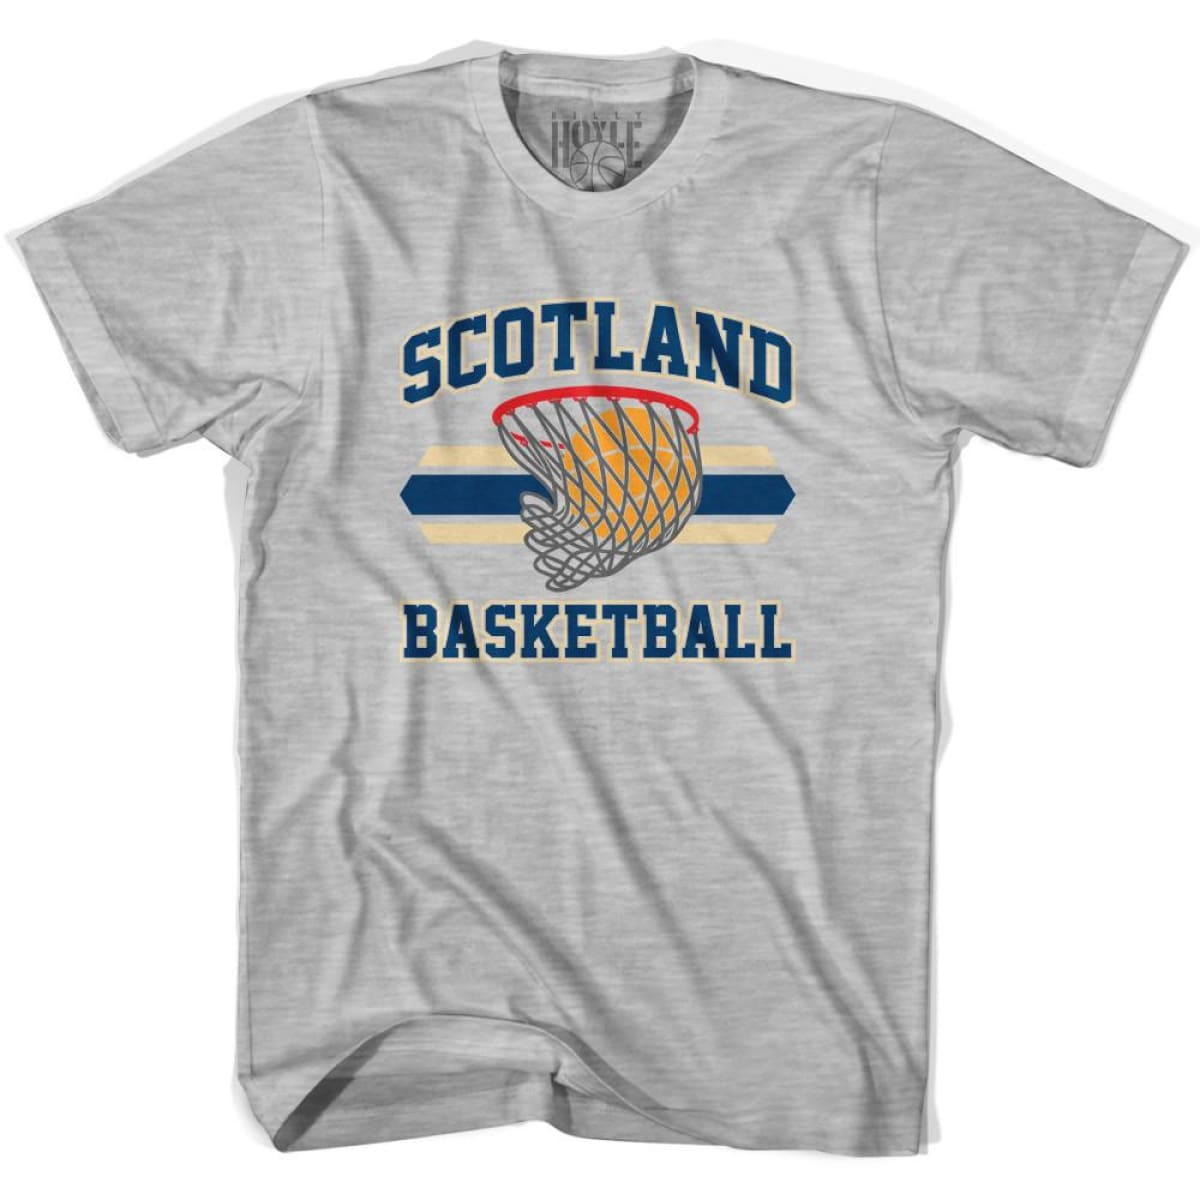 Scotland 90s Basketball T-shirts - Grey Heather / Youth X-Small - Basketball T-shirt